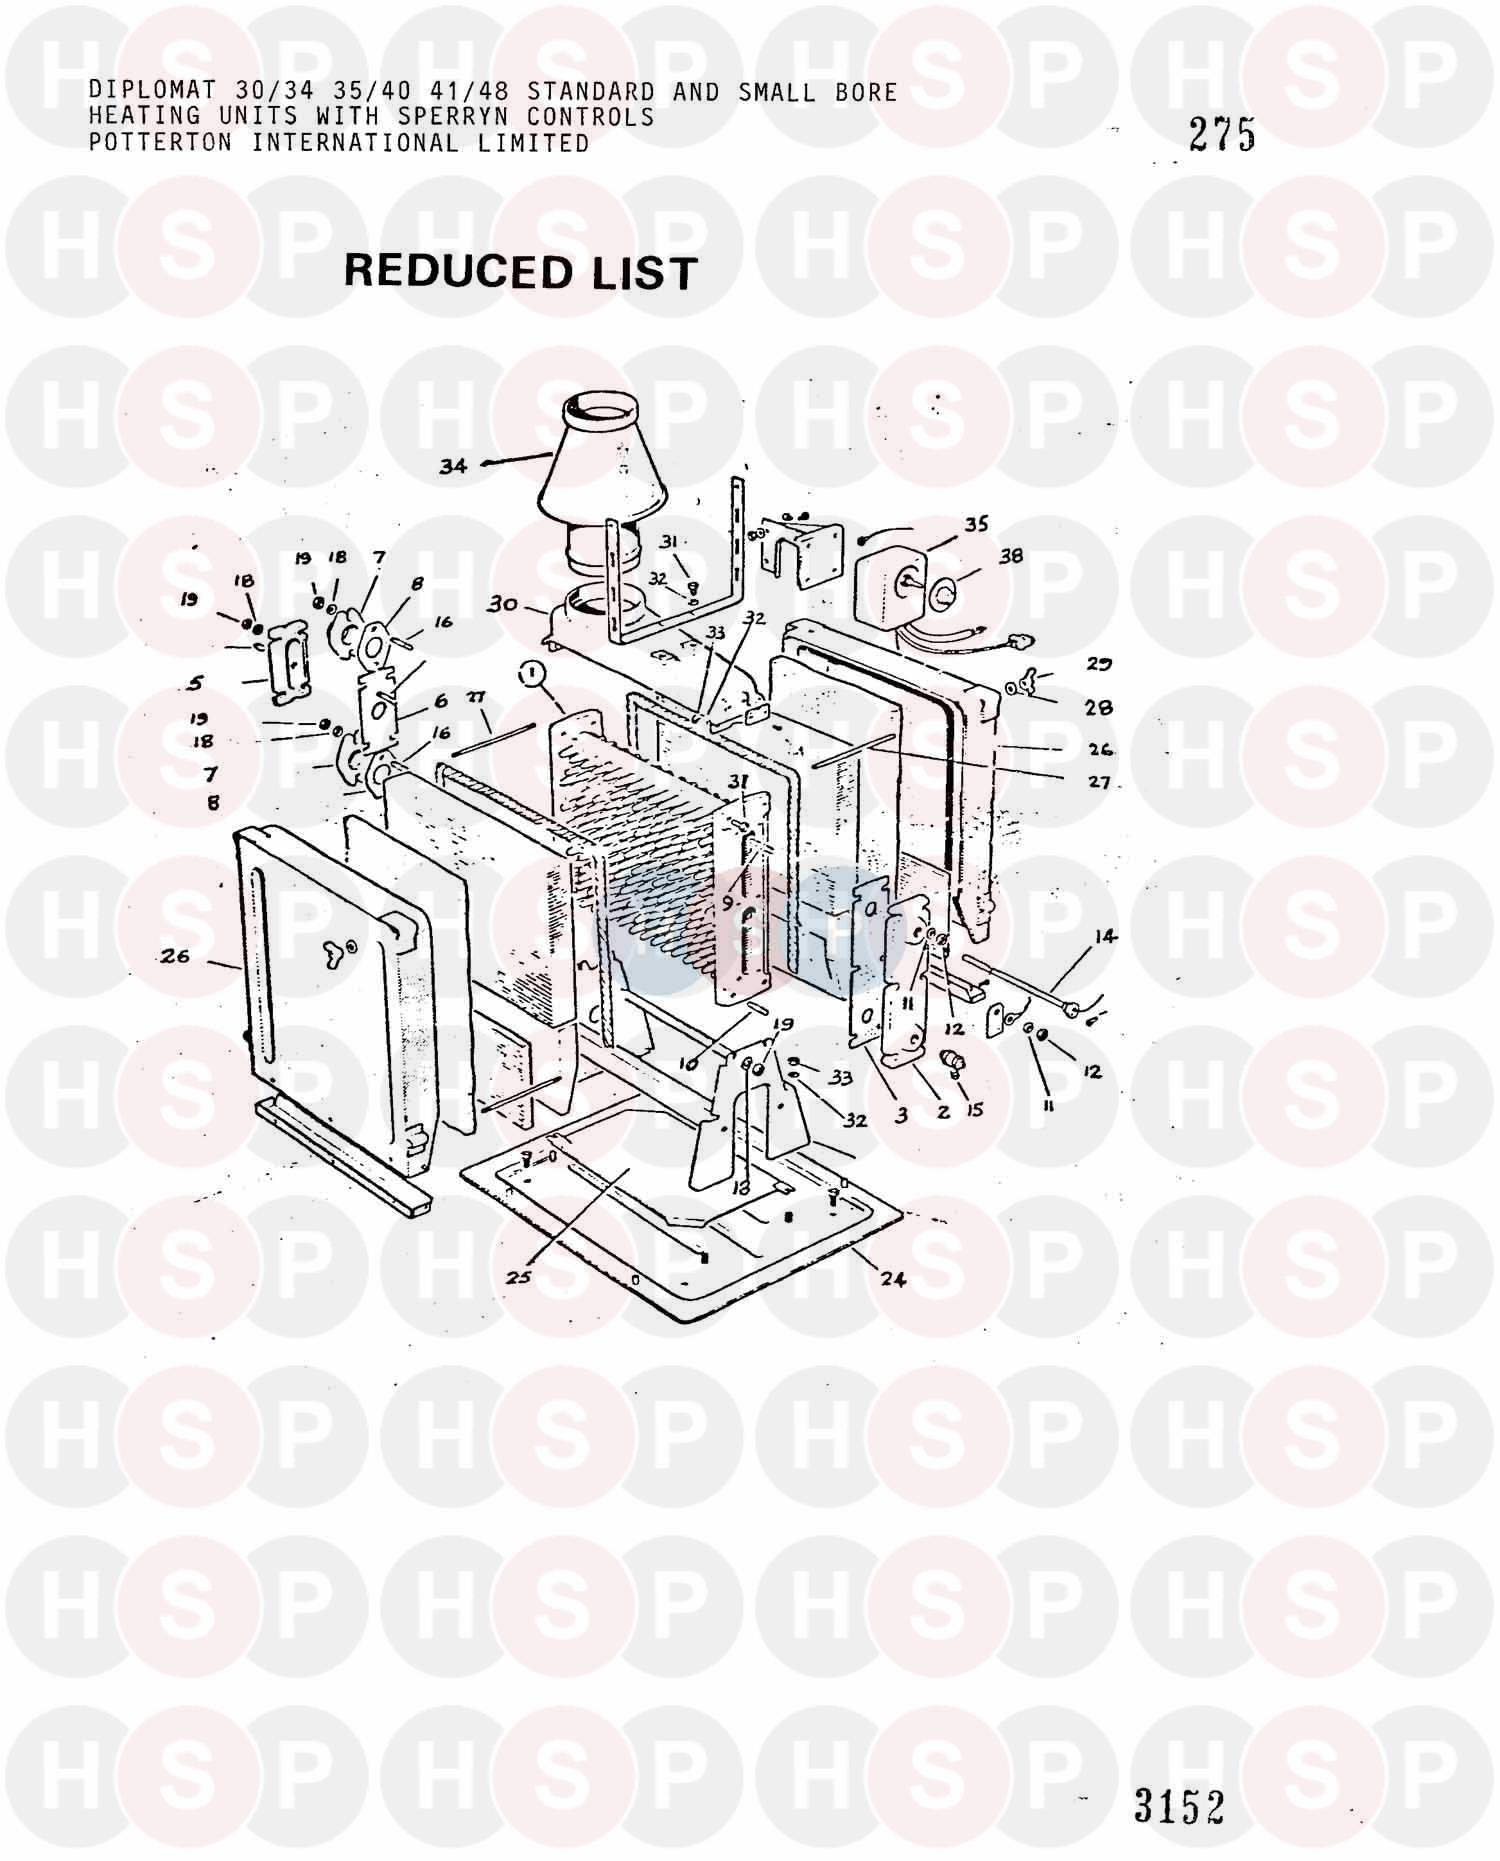 Assembly diagram for Potterton DIPLOMAT 30/34 BASIC(SPERRYN)HW&SW